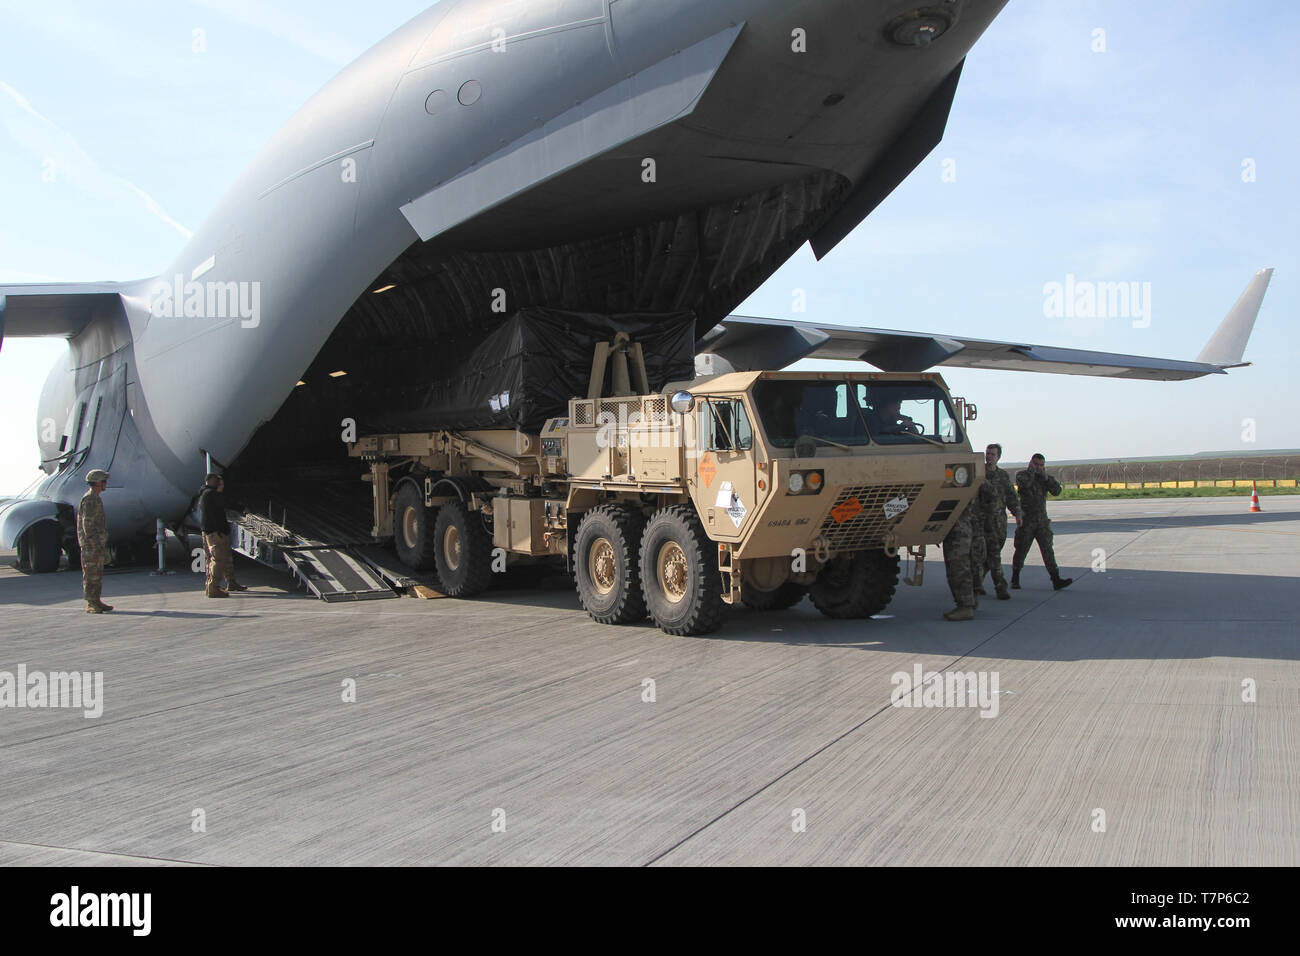 Army Air And Missile Defense Command Stock Photos & Army Air